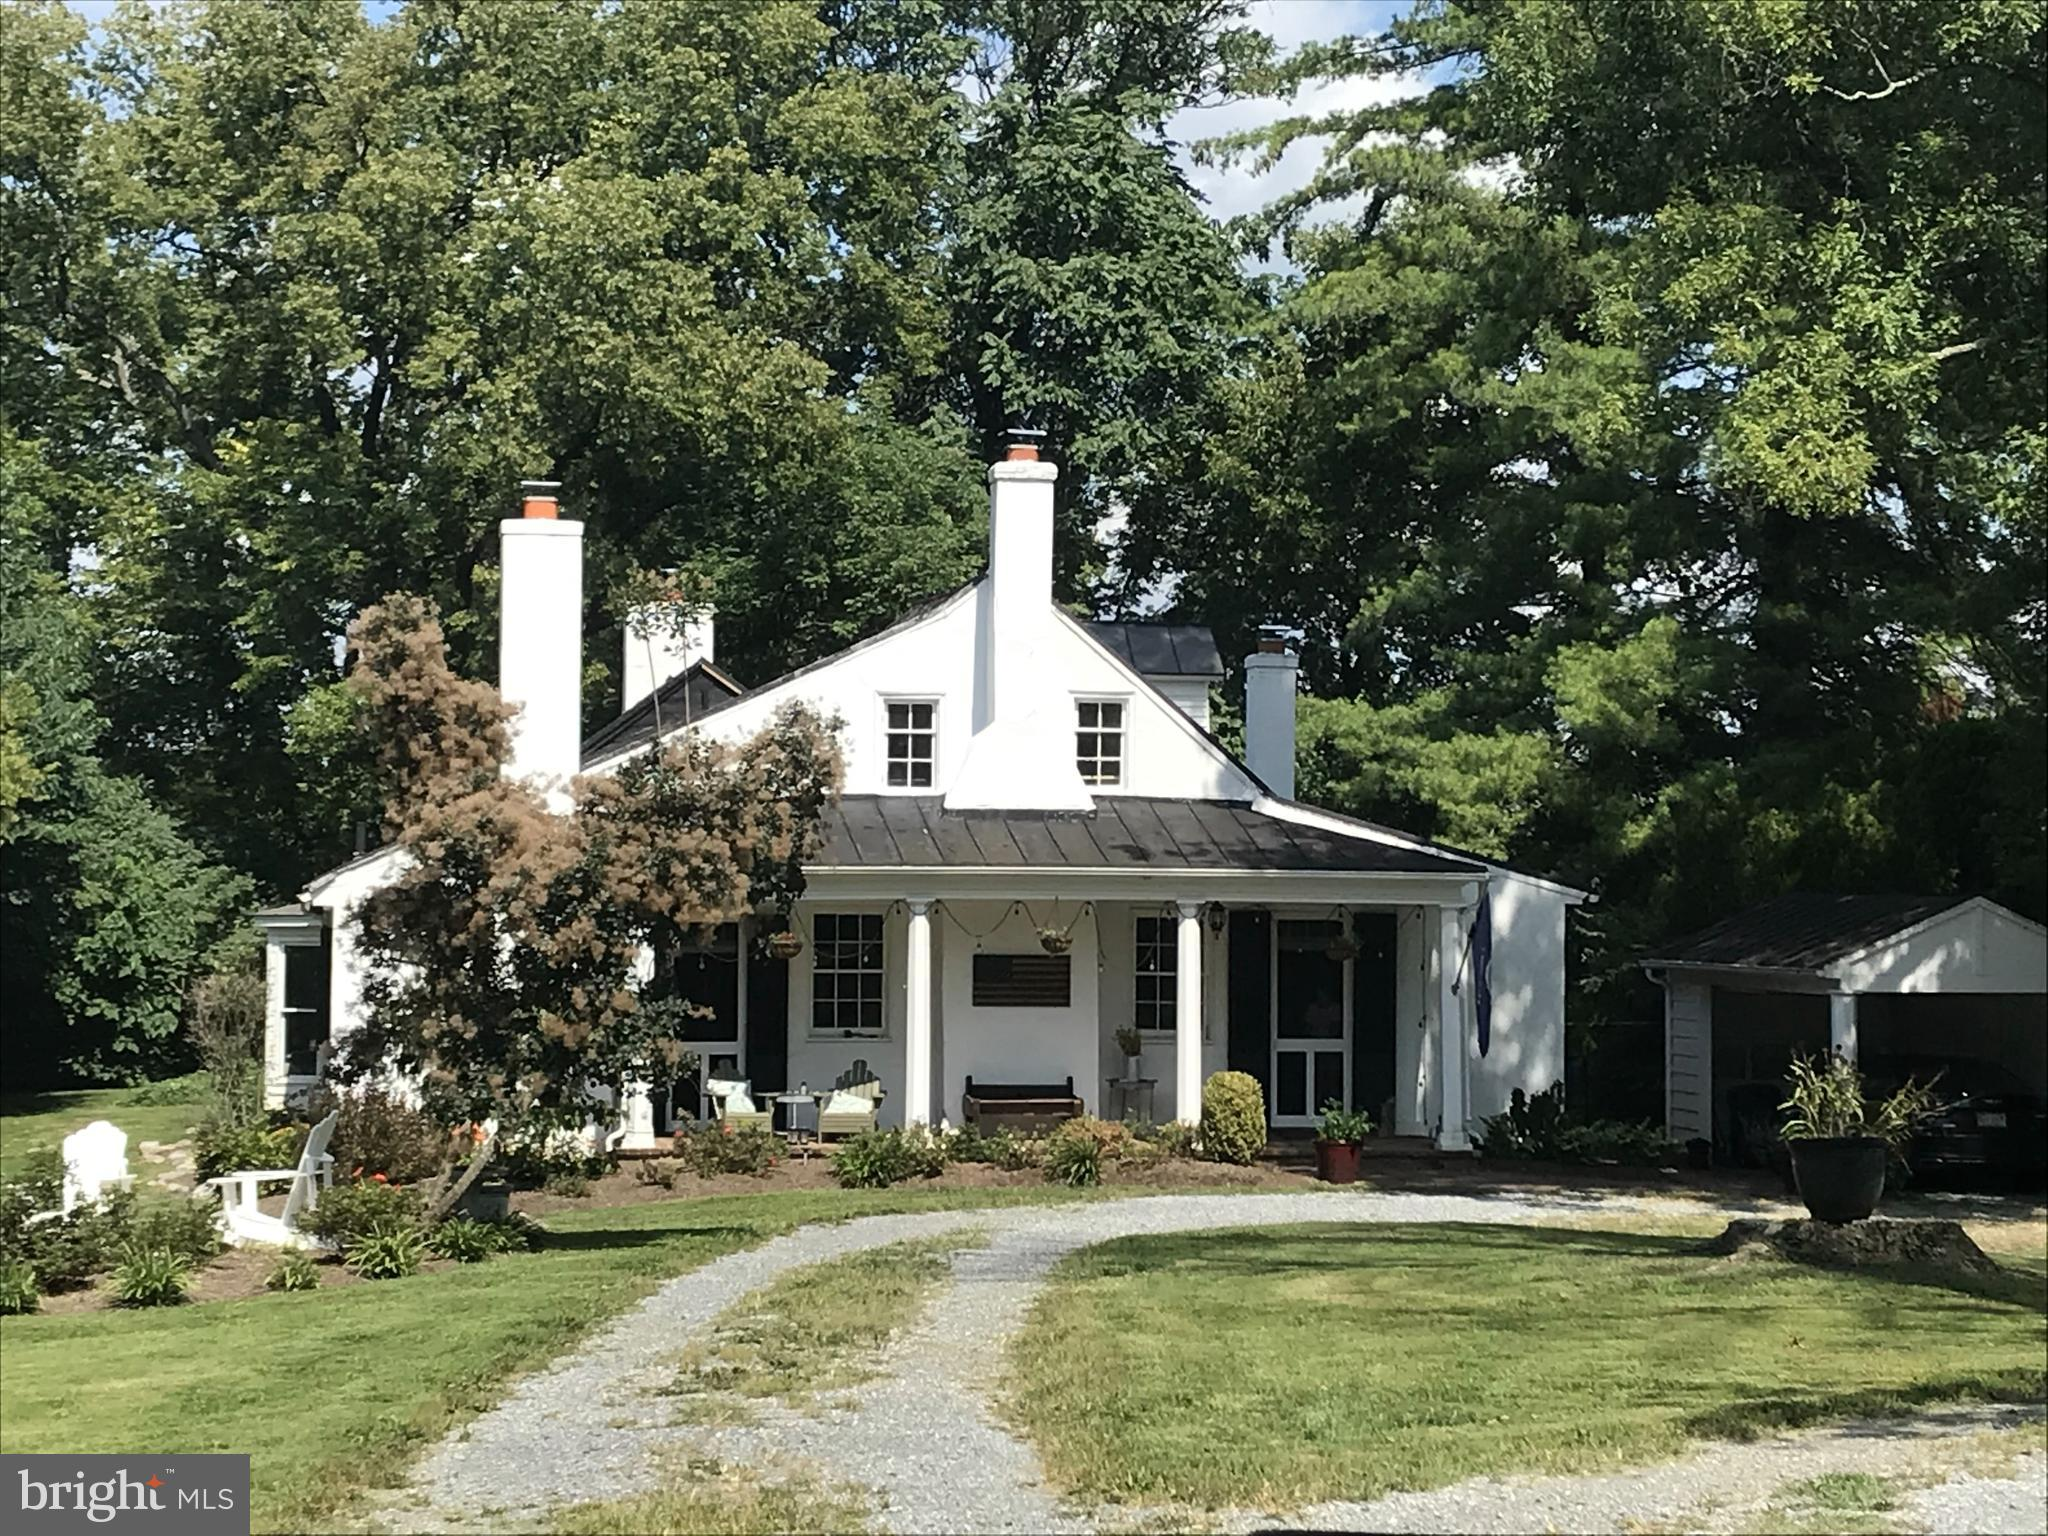 One of the oldest and most historic houses in Clarke County, New Market was built before 1770, perha